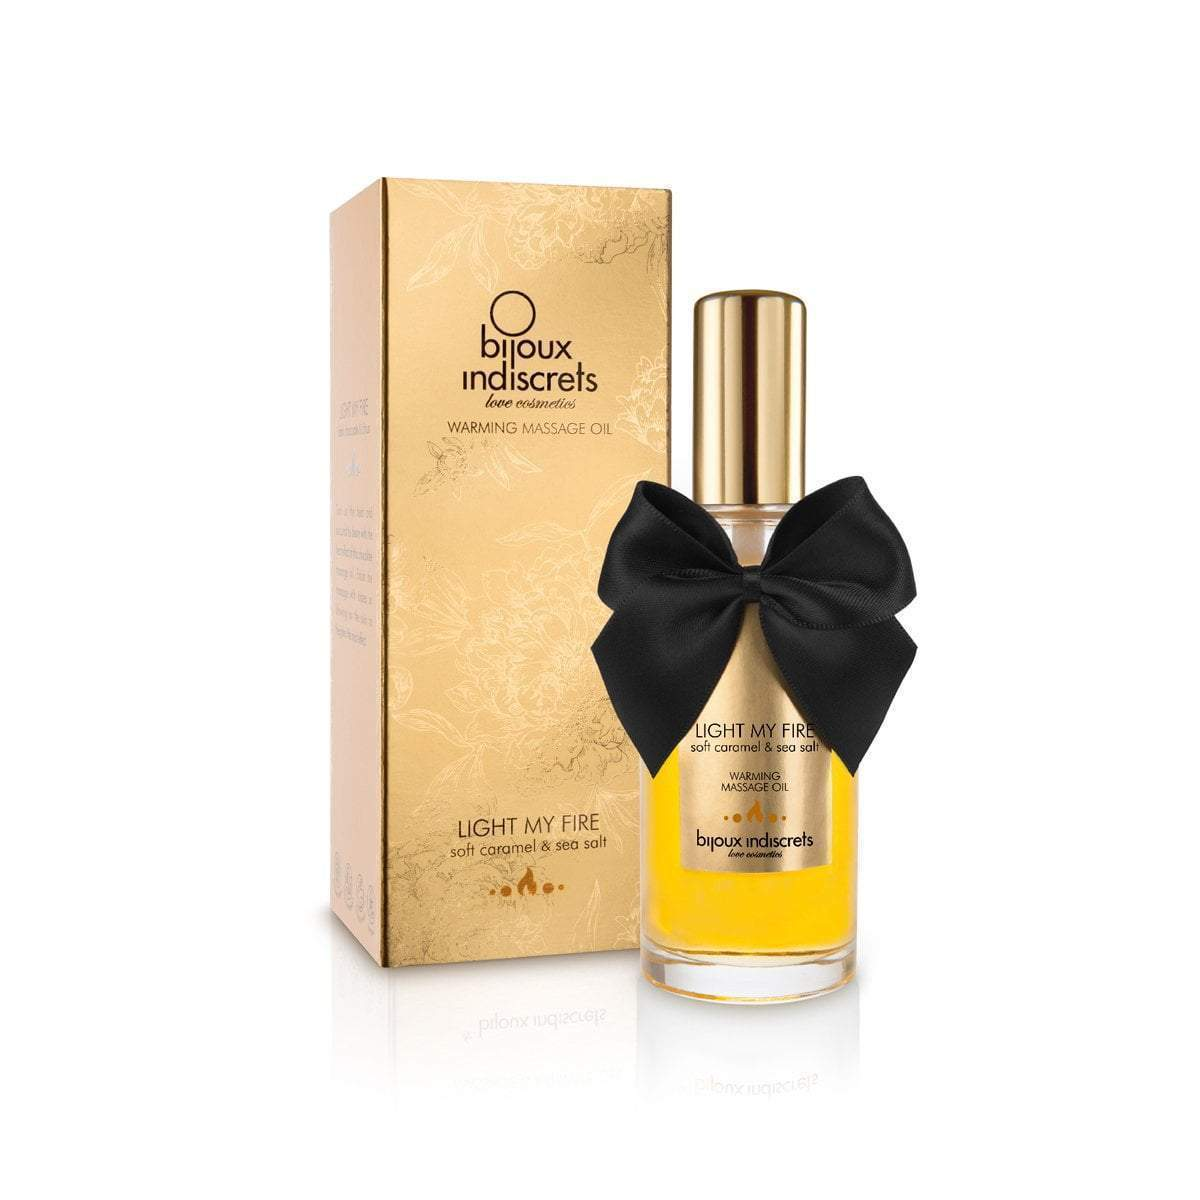 Bijoux Indescrets Massage Oil Light My Fire - Soft Caramel Warming Oil